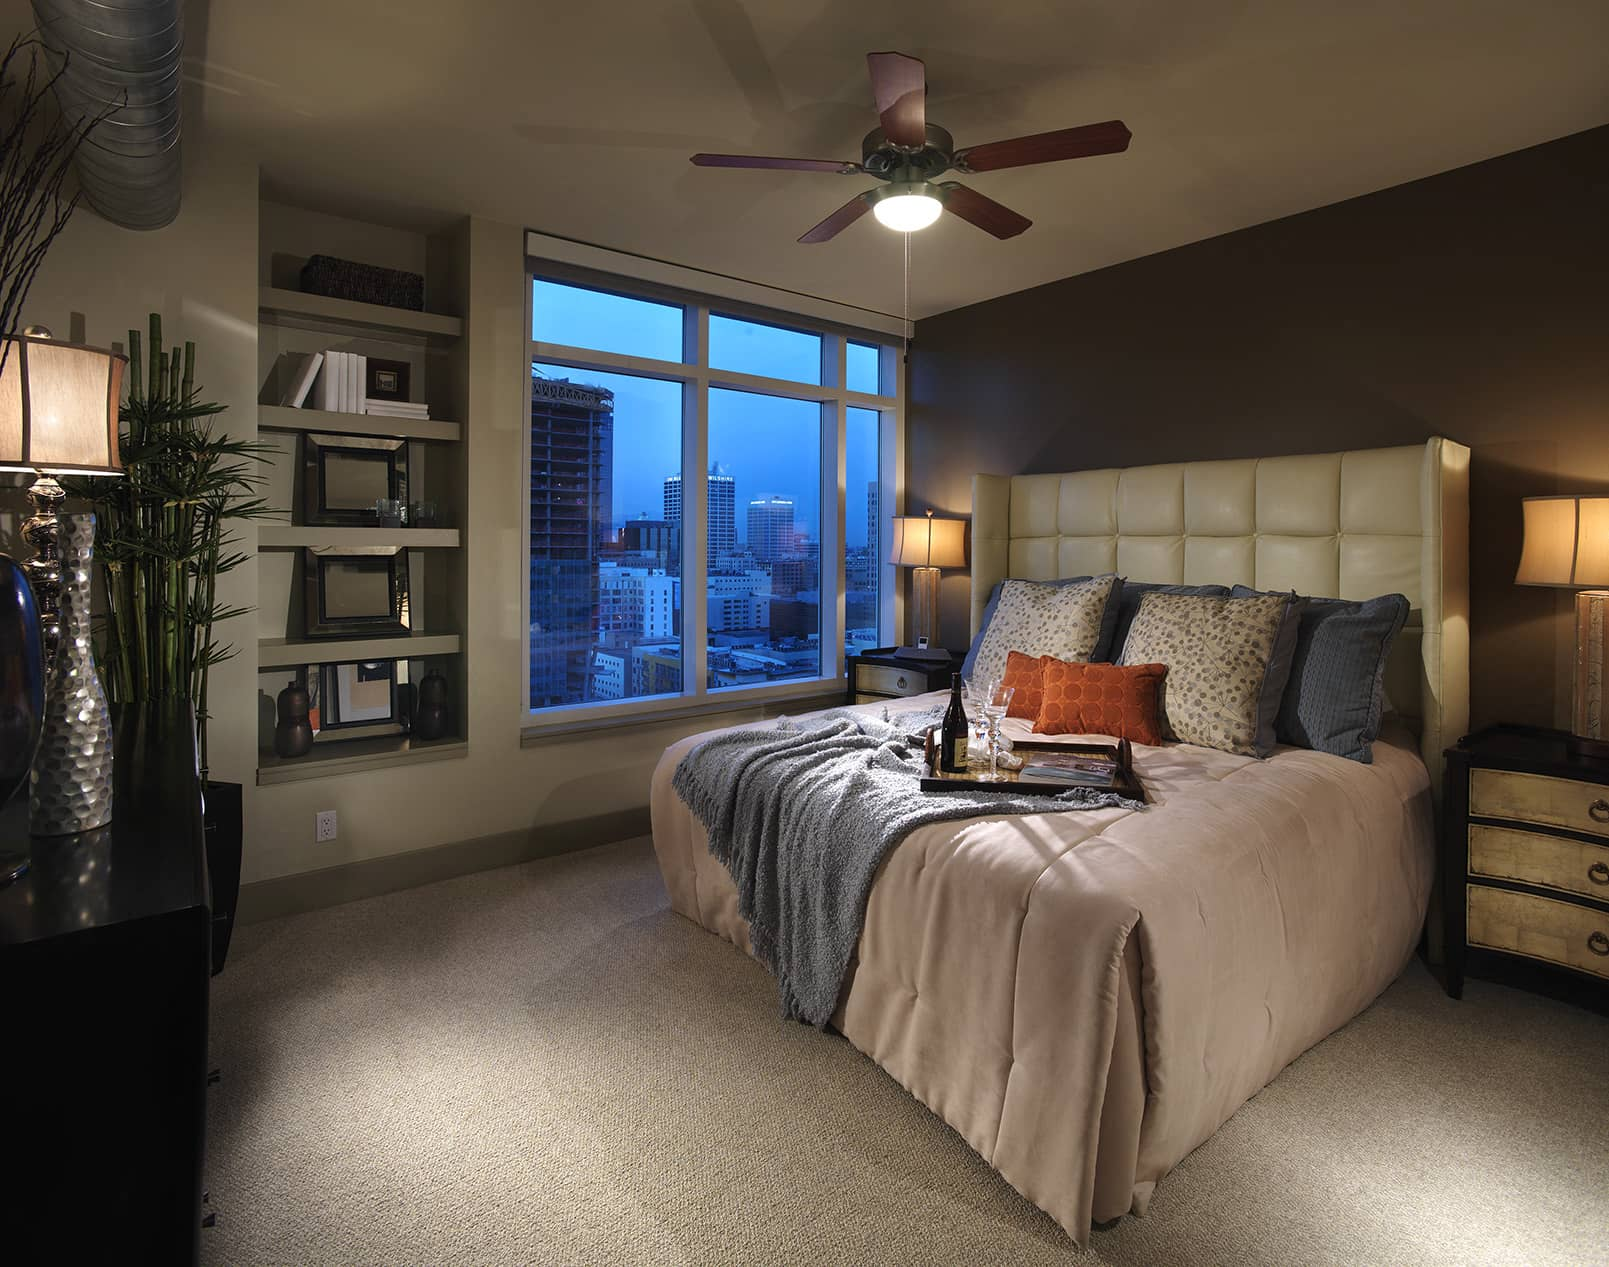 Two bedroom - furnished bedroom